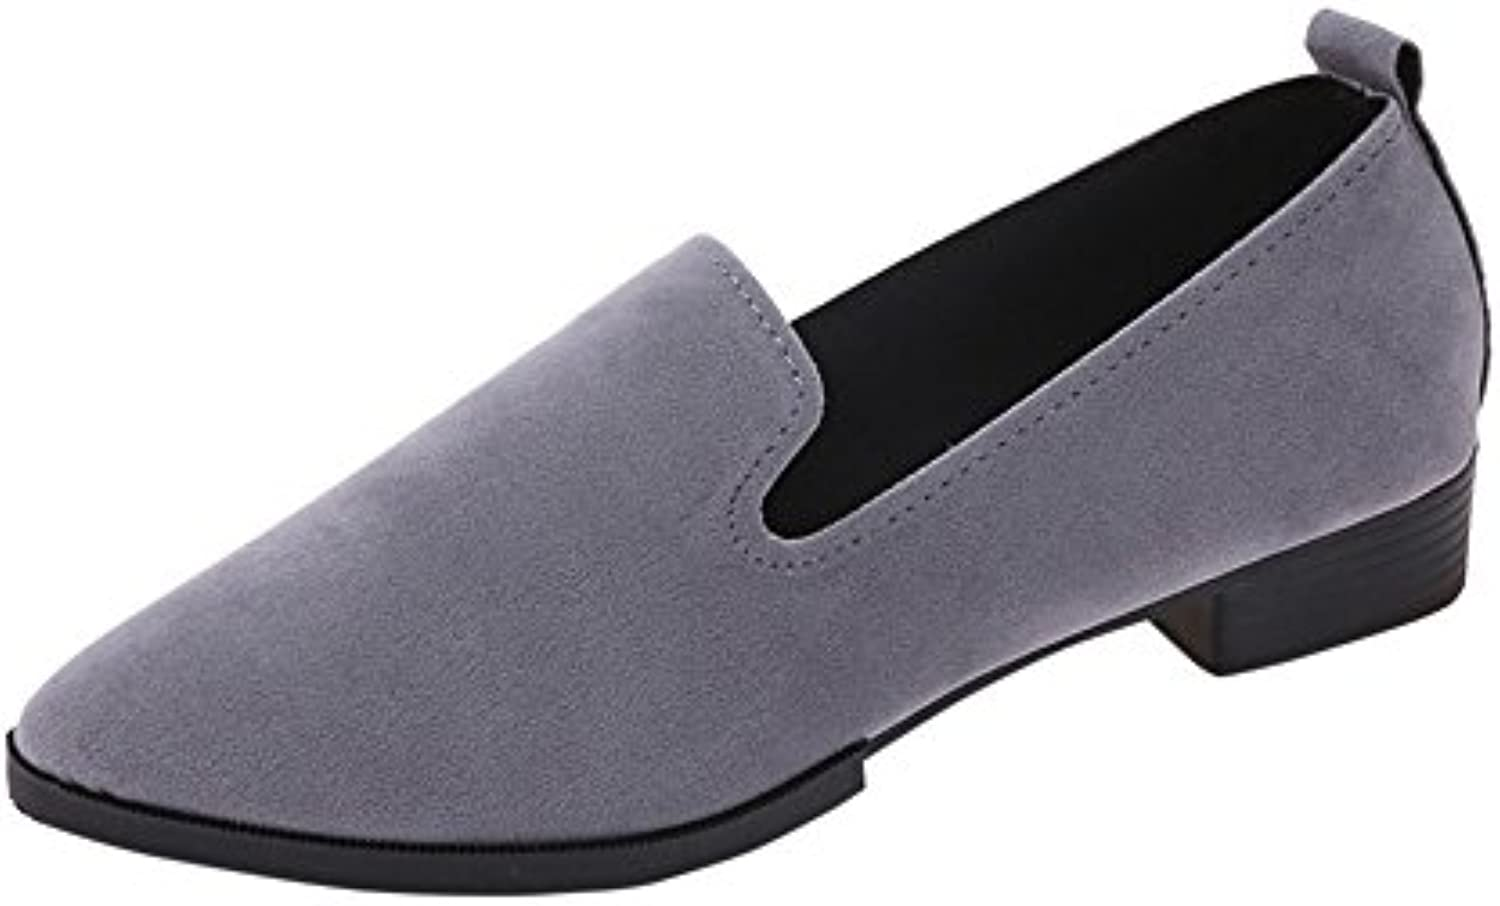 Chaussures Femmes, Yesmile Femmes Casual Dames Slip on  s Plates Chaussures Casual Femmes Solid Fashion Loafer ChaussuresB07H1S5SNGParent 2740aa